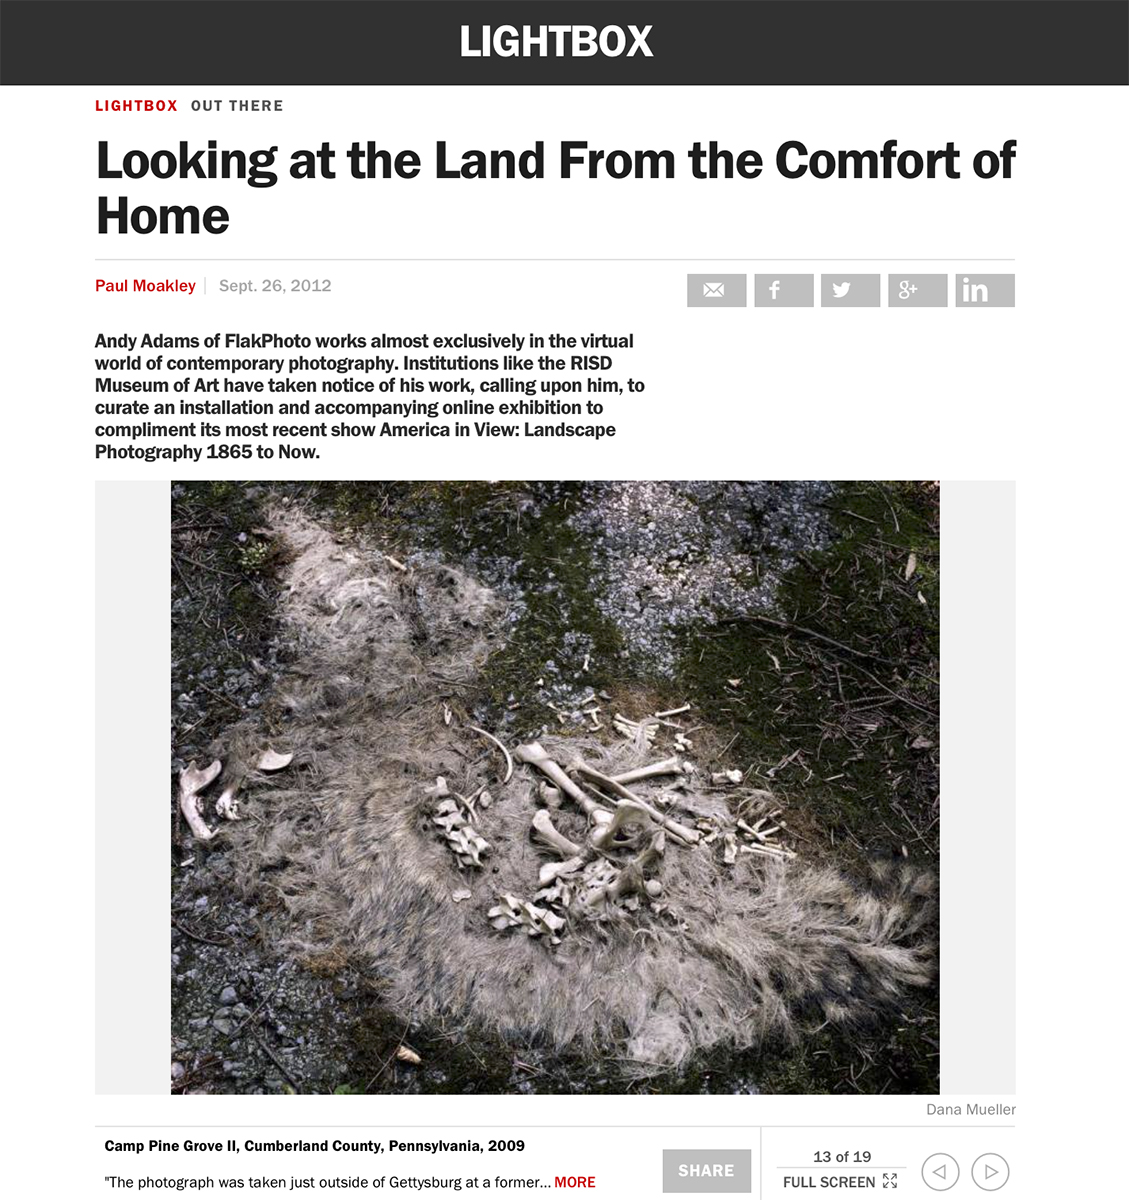 --Looking at the Land From the Comfort of HomeBy Paul MoakleyInterview with Andy Adams of FlakPhoto